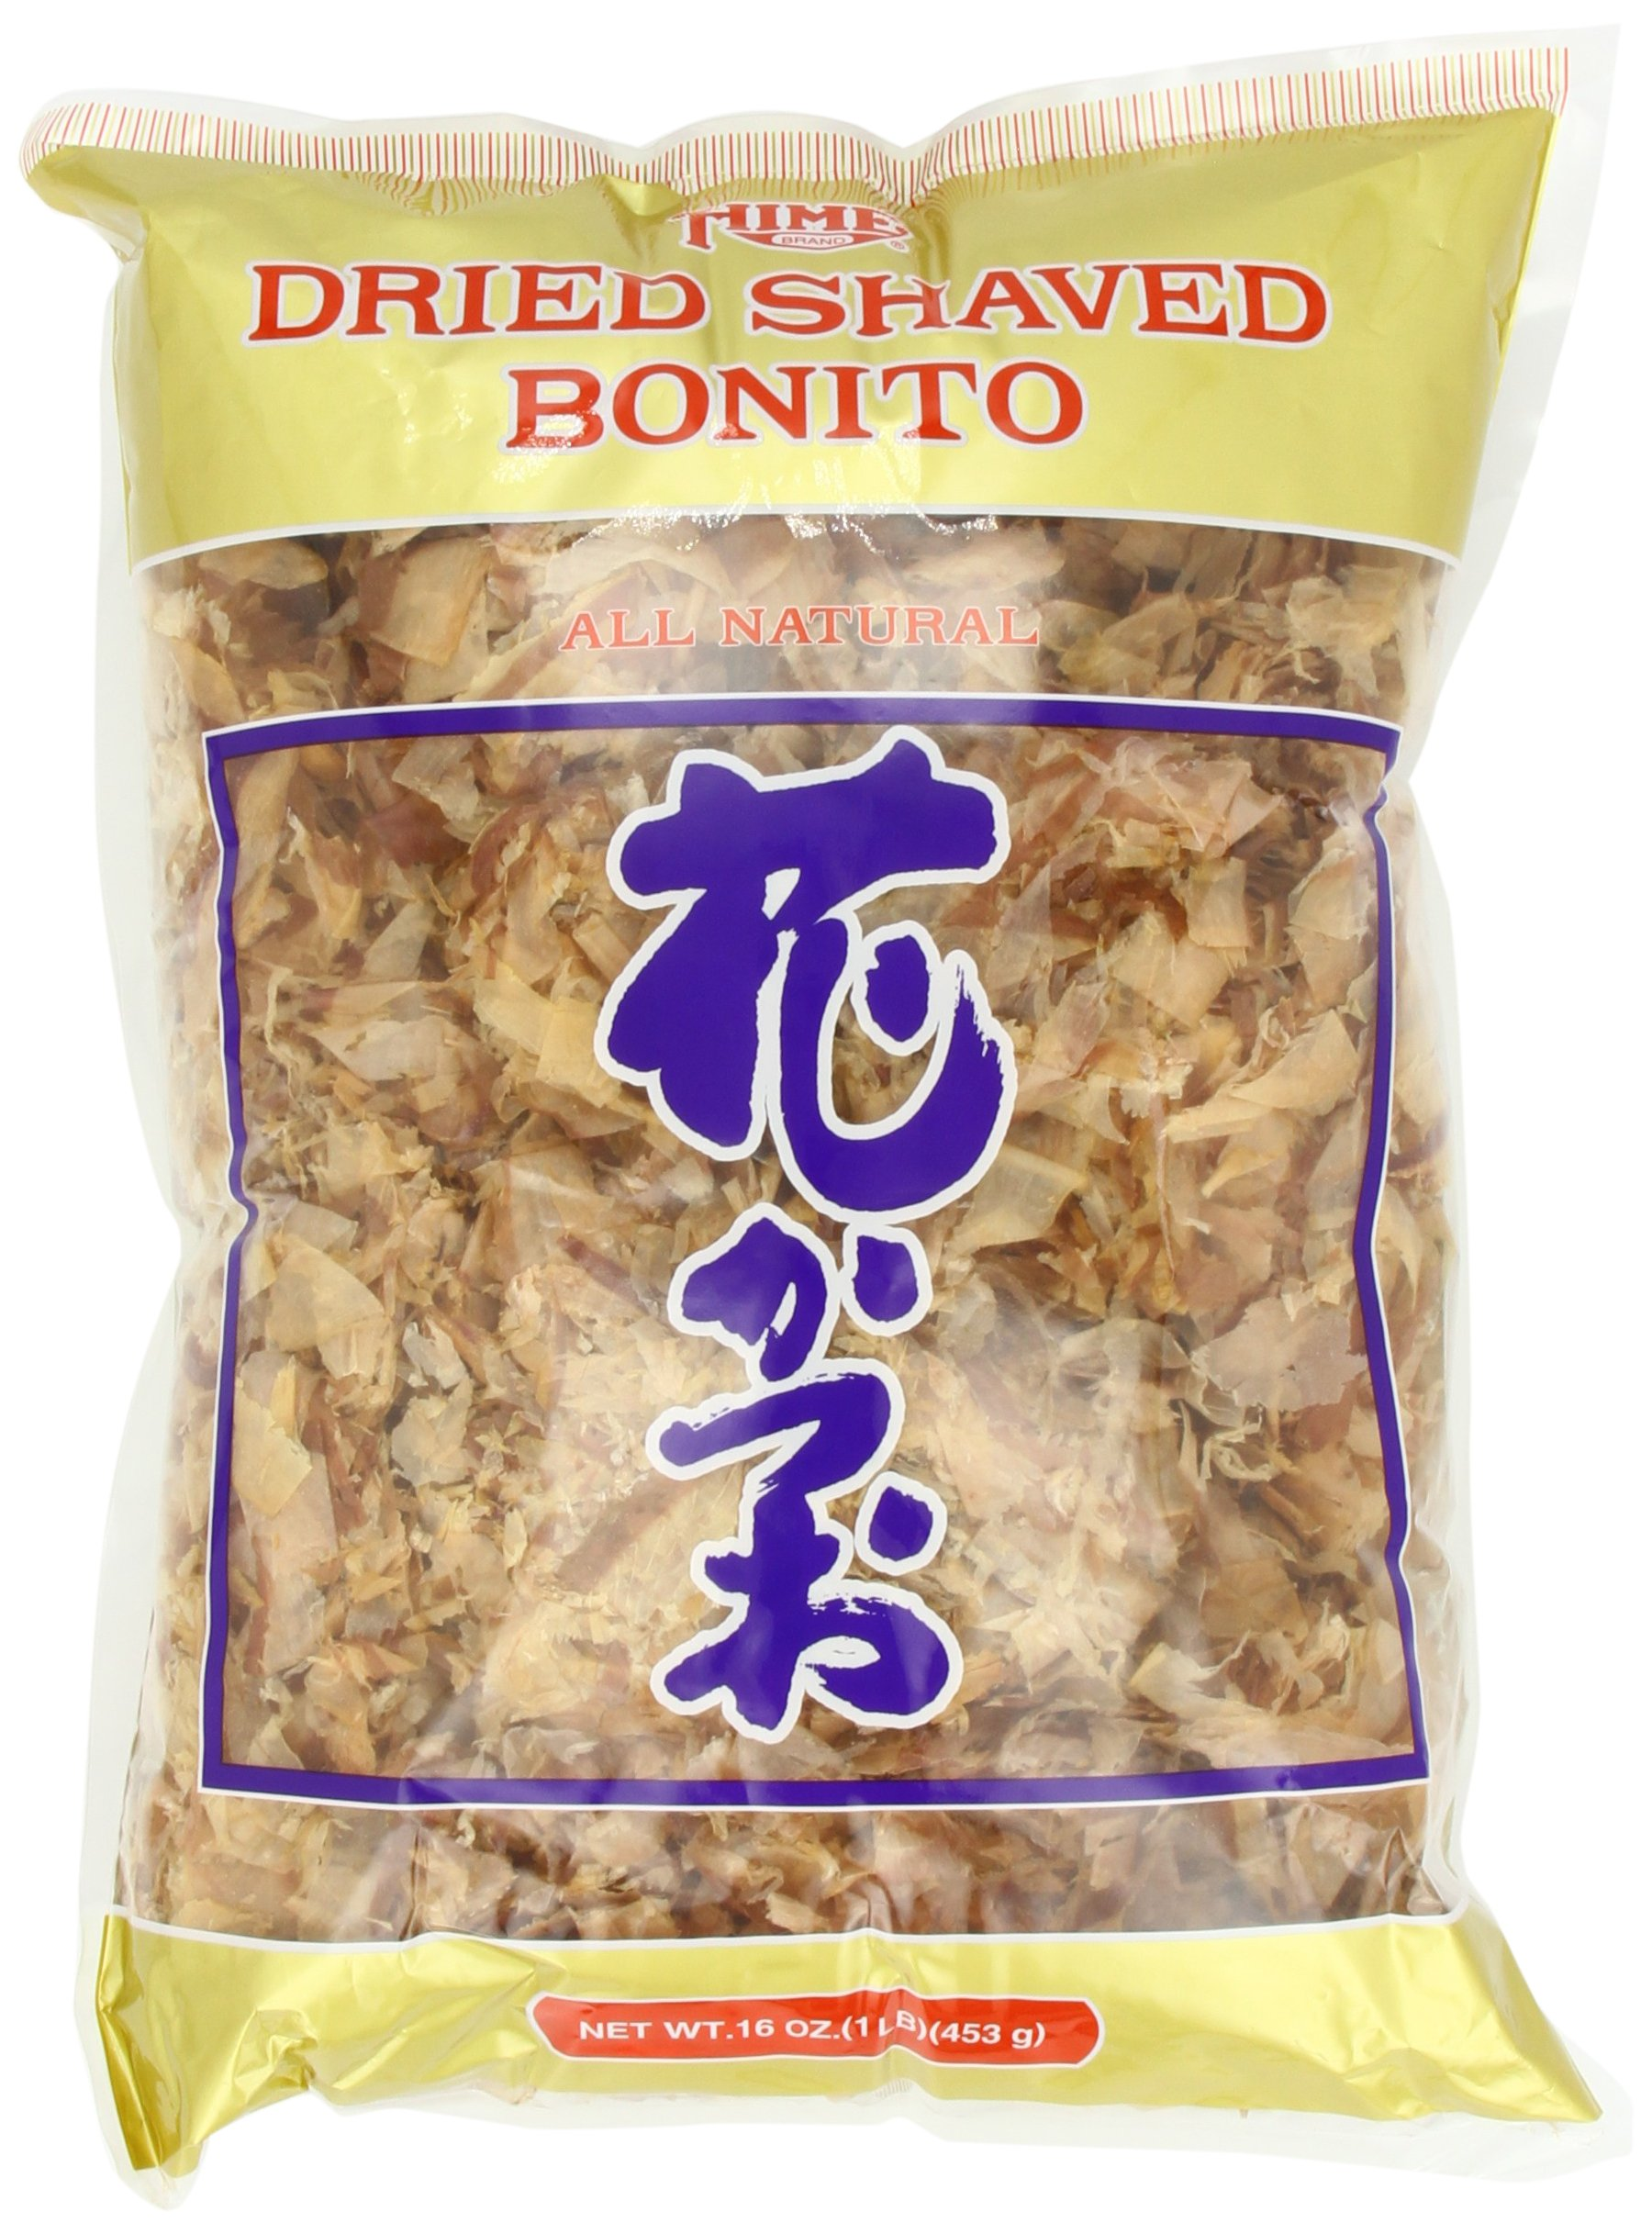 Hime Dried Bonito Shavings Bulk, 16-Ounce by Hime (Image #1)